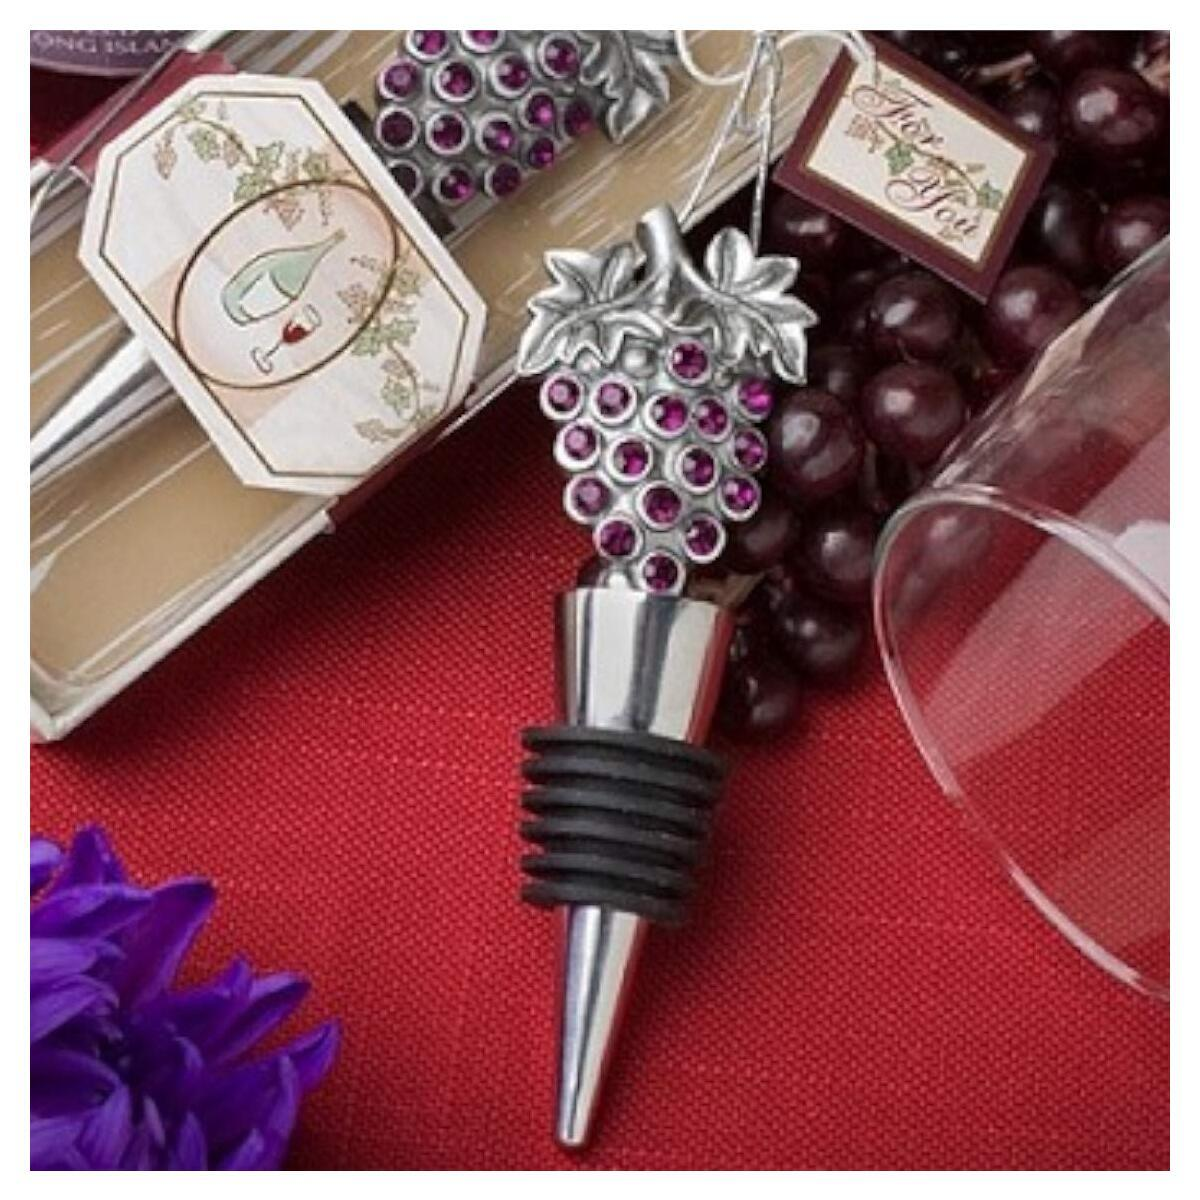 Wine Gift Baskets For Wine Lovers - Includes Wine Glass, Wine Socks, More - LIQUID THERAPY ONLY